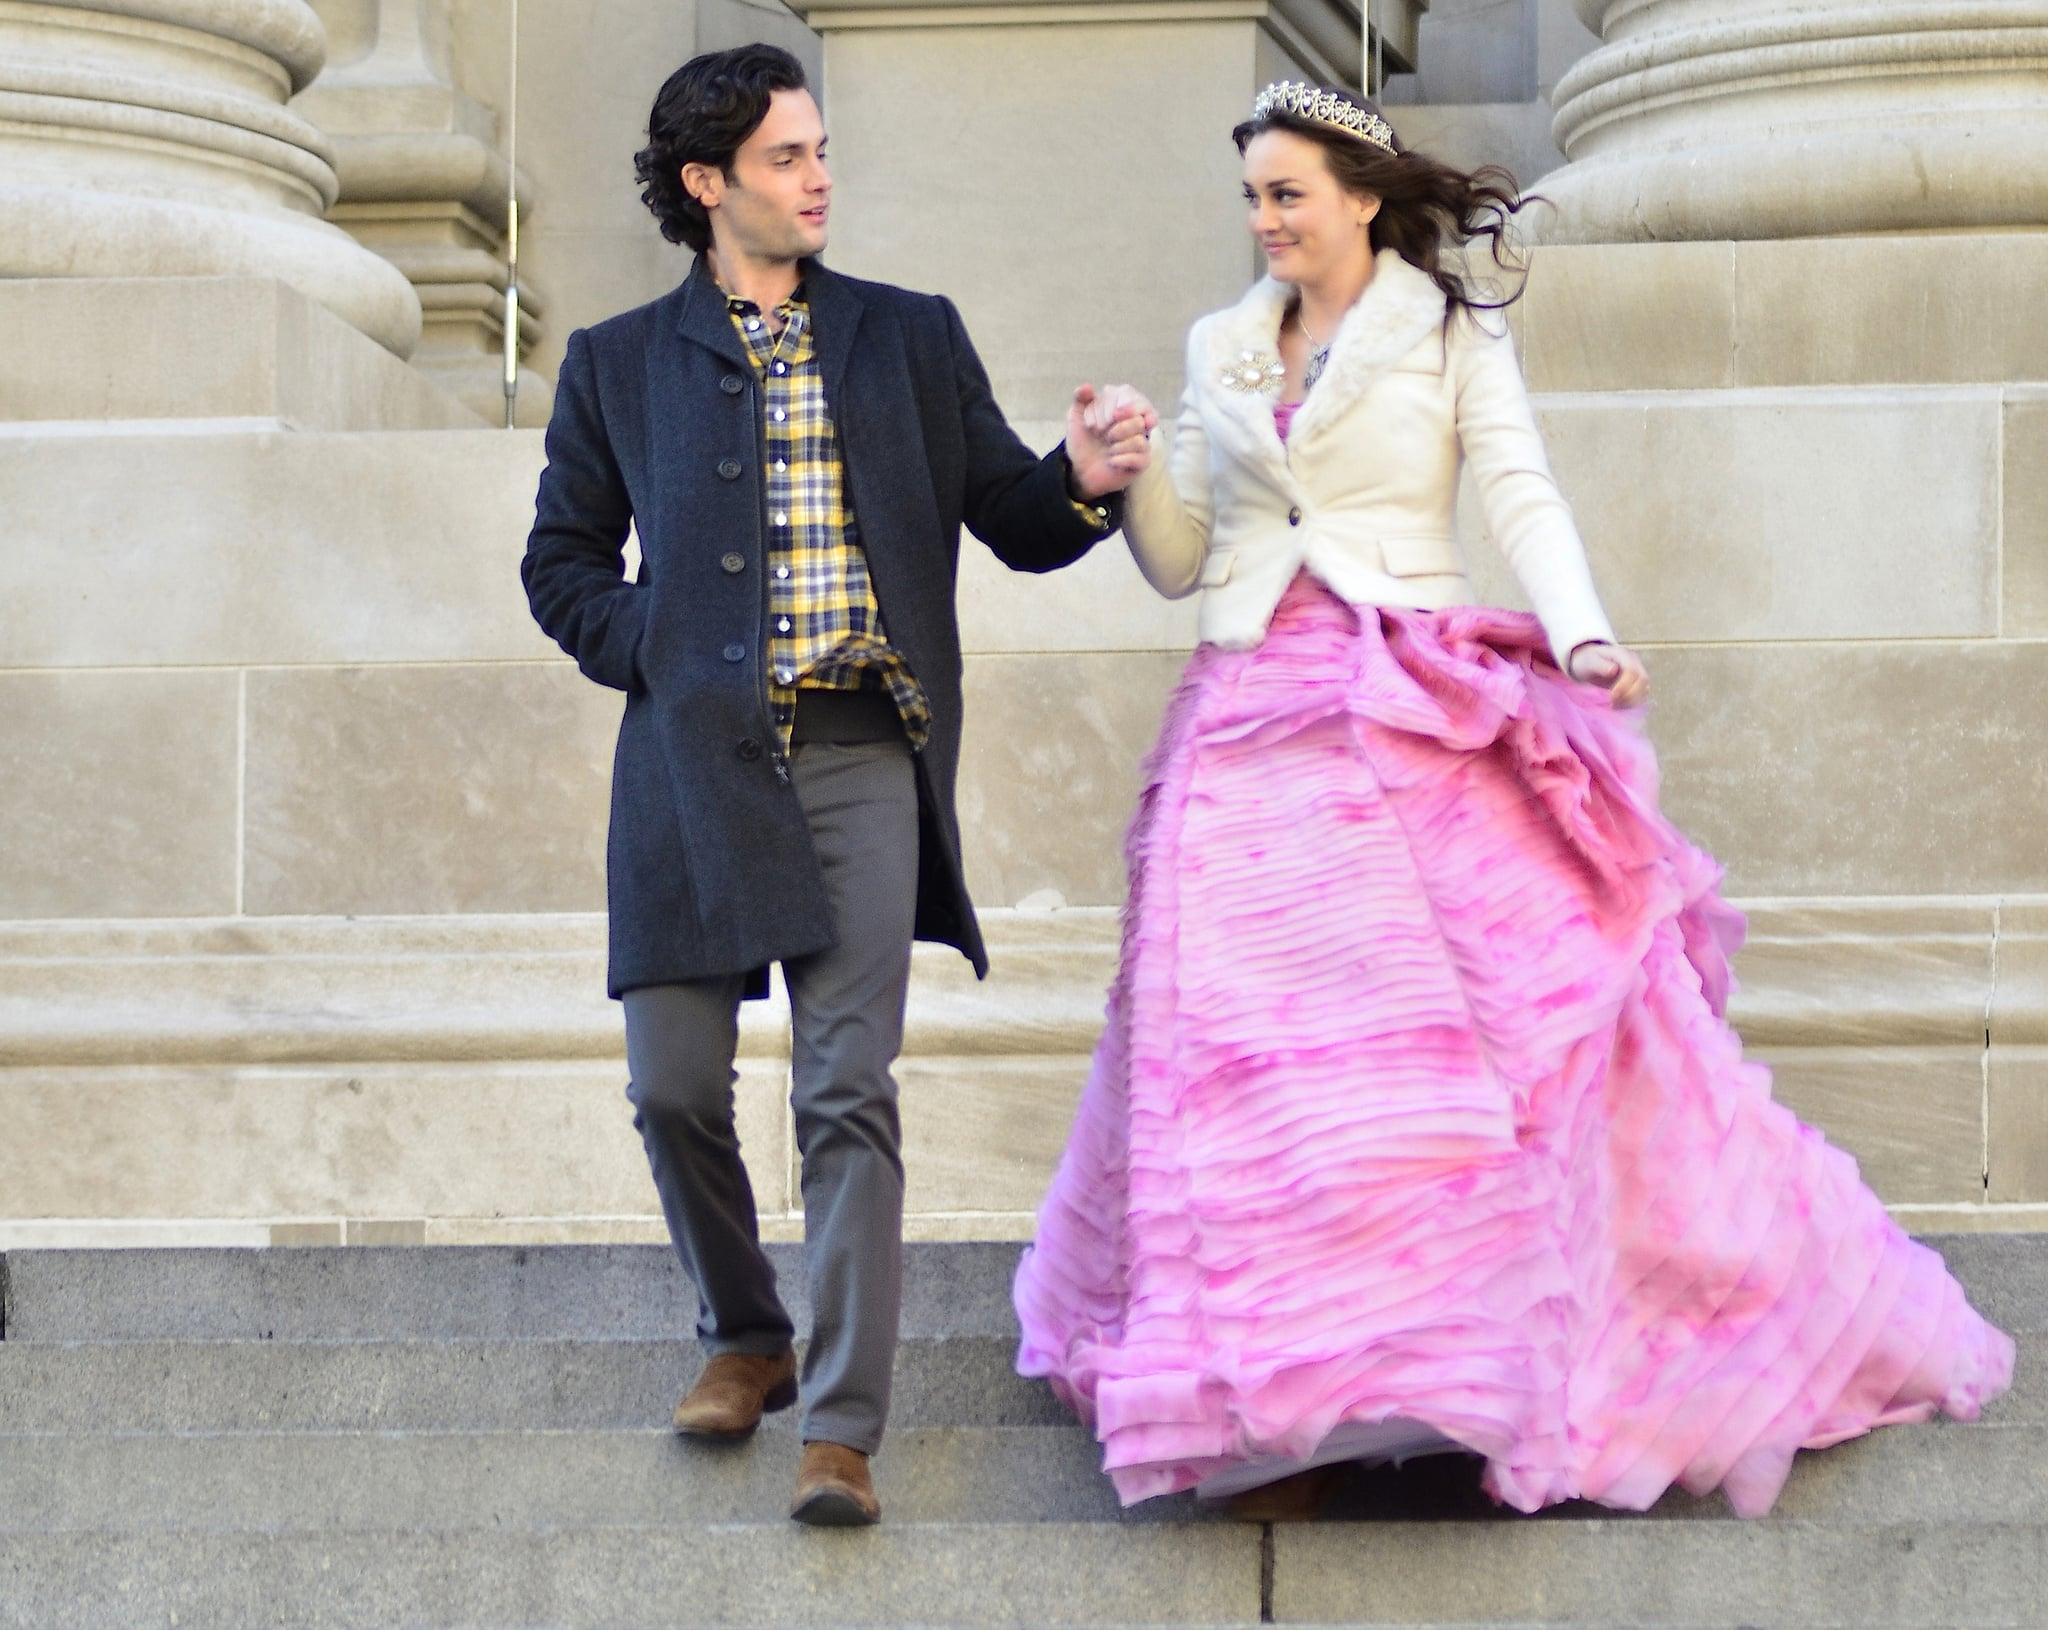 Penn Badgley's Dan Humphrey came to the rescue of Blair Waldorf, played by Leighton Meester, in February 2012.